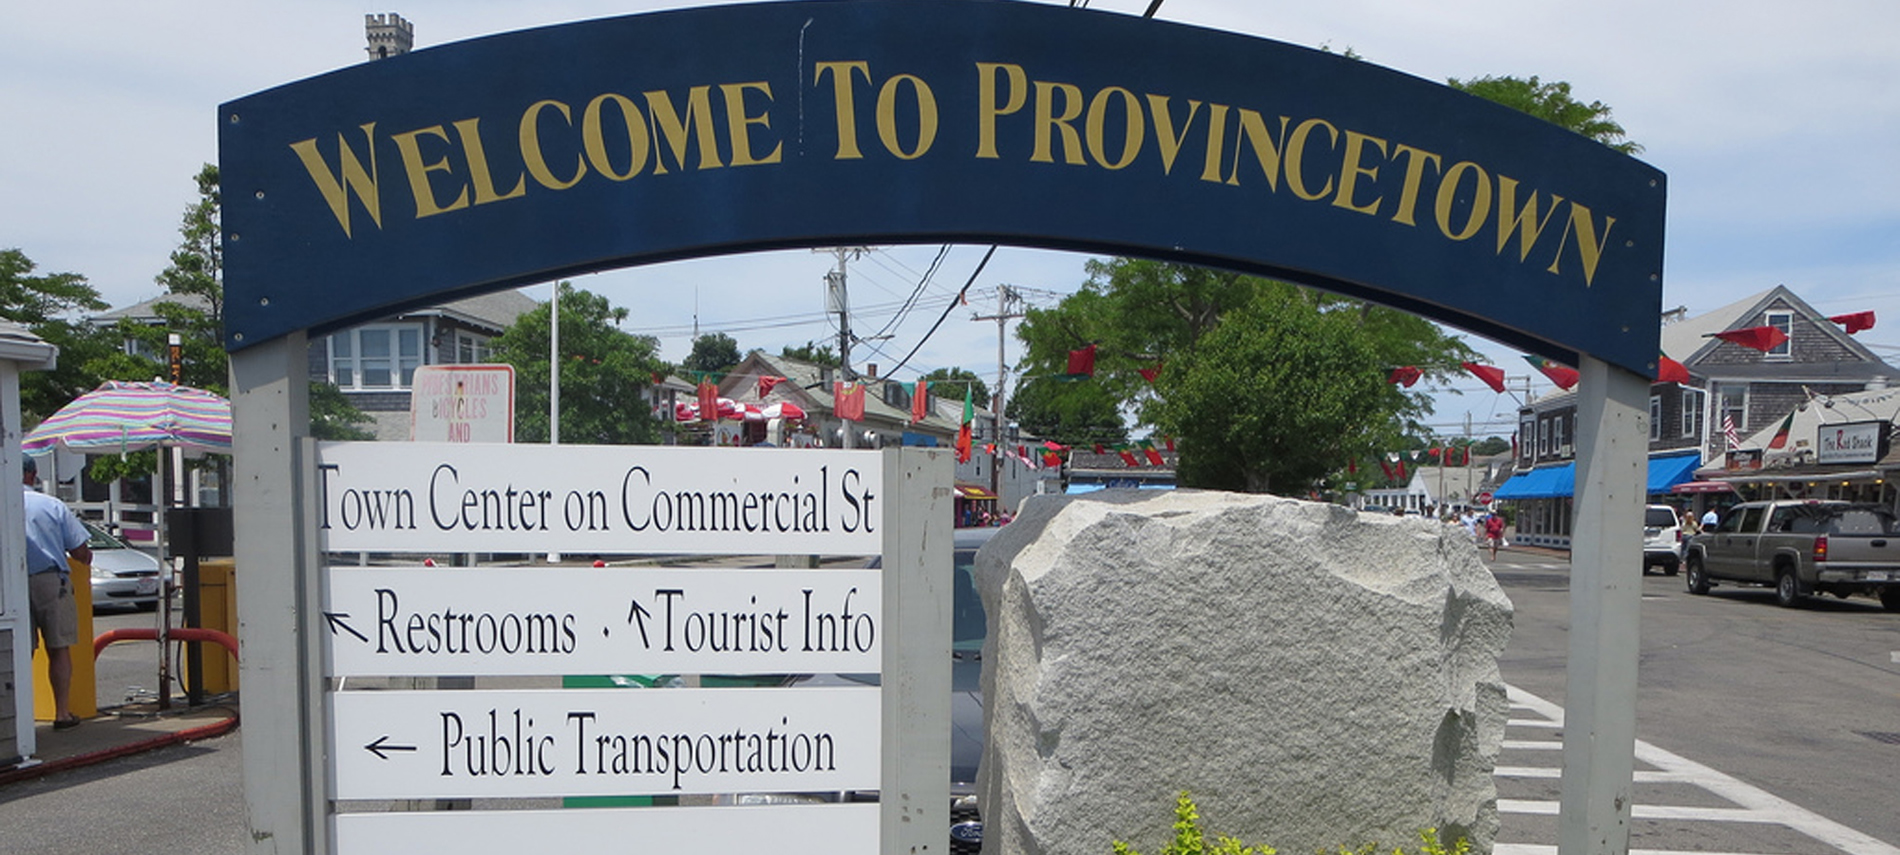 Blue with gold Sign  says Welcome to Provincetown With directional signs below done in black text and white background